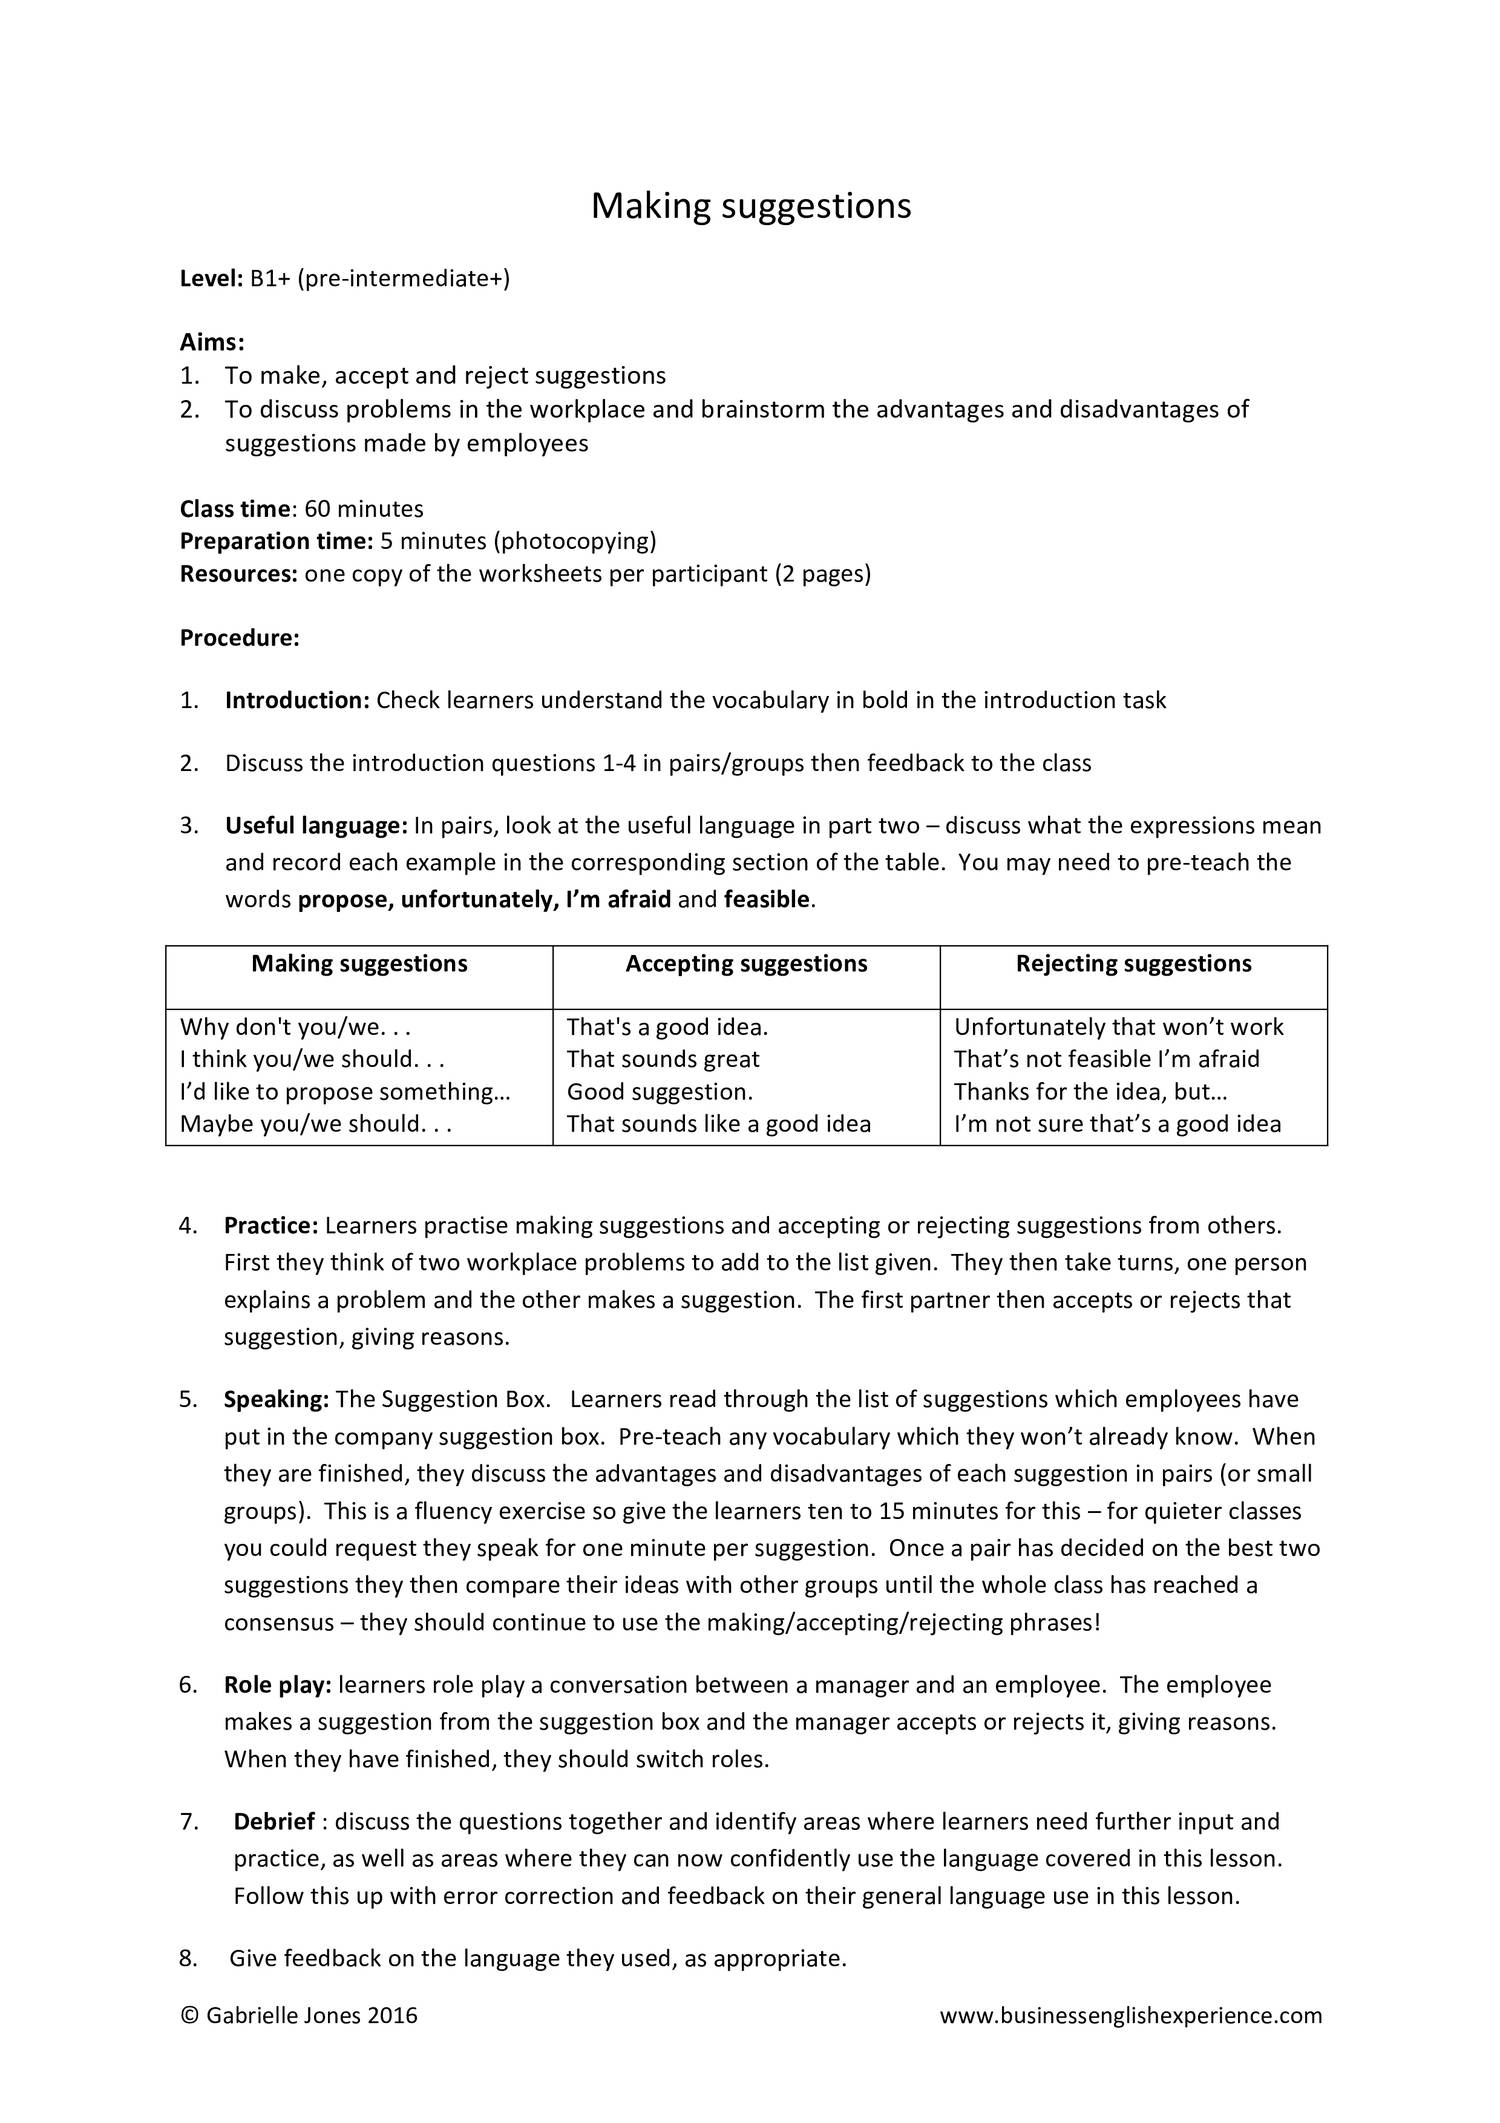 Making suggestions pdf   DocDroid